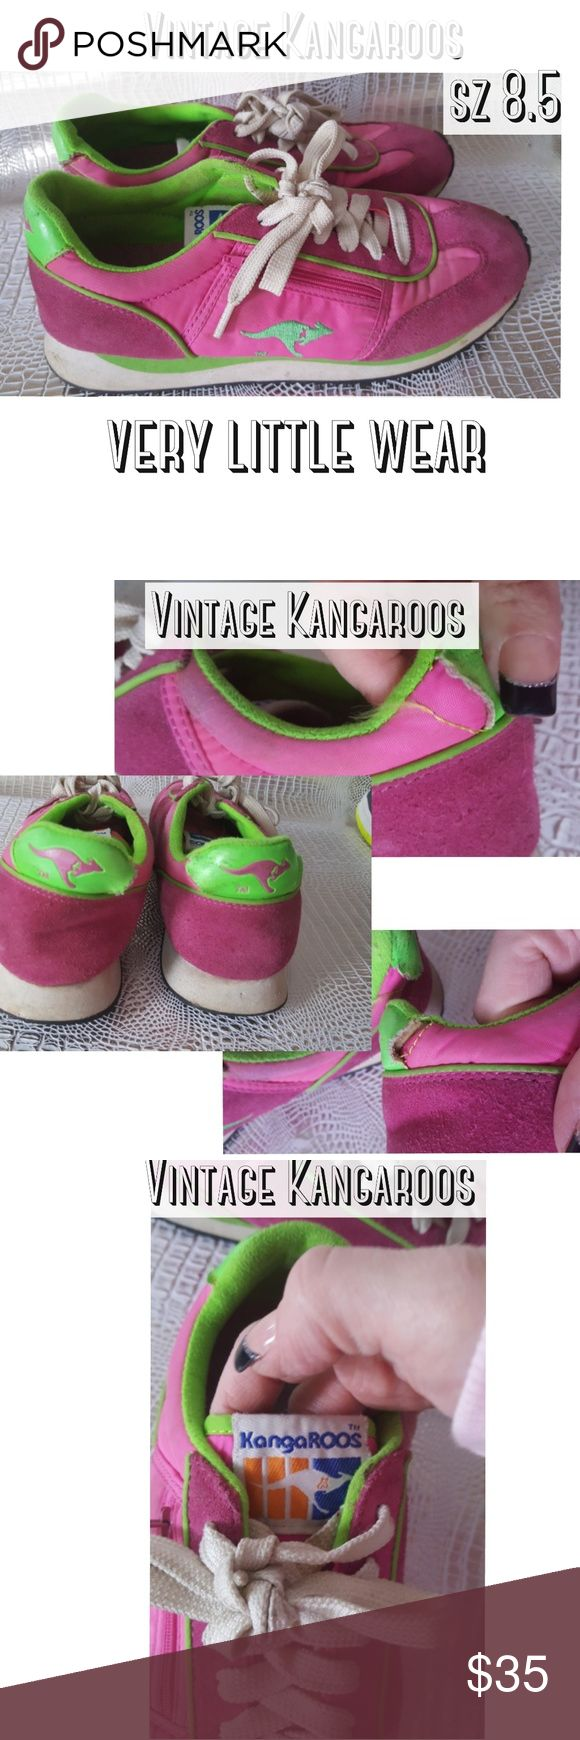 Vintage kangaROOS 80s sneakers pink green runners Vintage kangaROOS 80s sneakers pink green  These are great pair of 1980s sneakers in fluorescent pink and Flourescent Green there is one little spot on the back of each sneaker that is come loose I think from someone taking the sneaker off but does not detract from the use or coolness of these sneakers has a little zipper pocket on the side no other wear or damage Pre owned condition *******All items are in pre owned condition, Nothing…